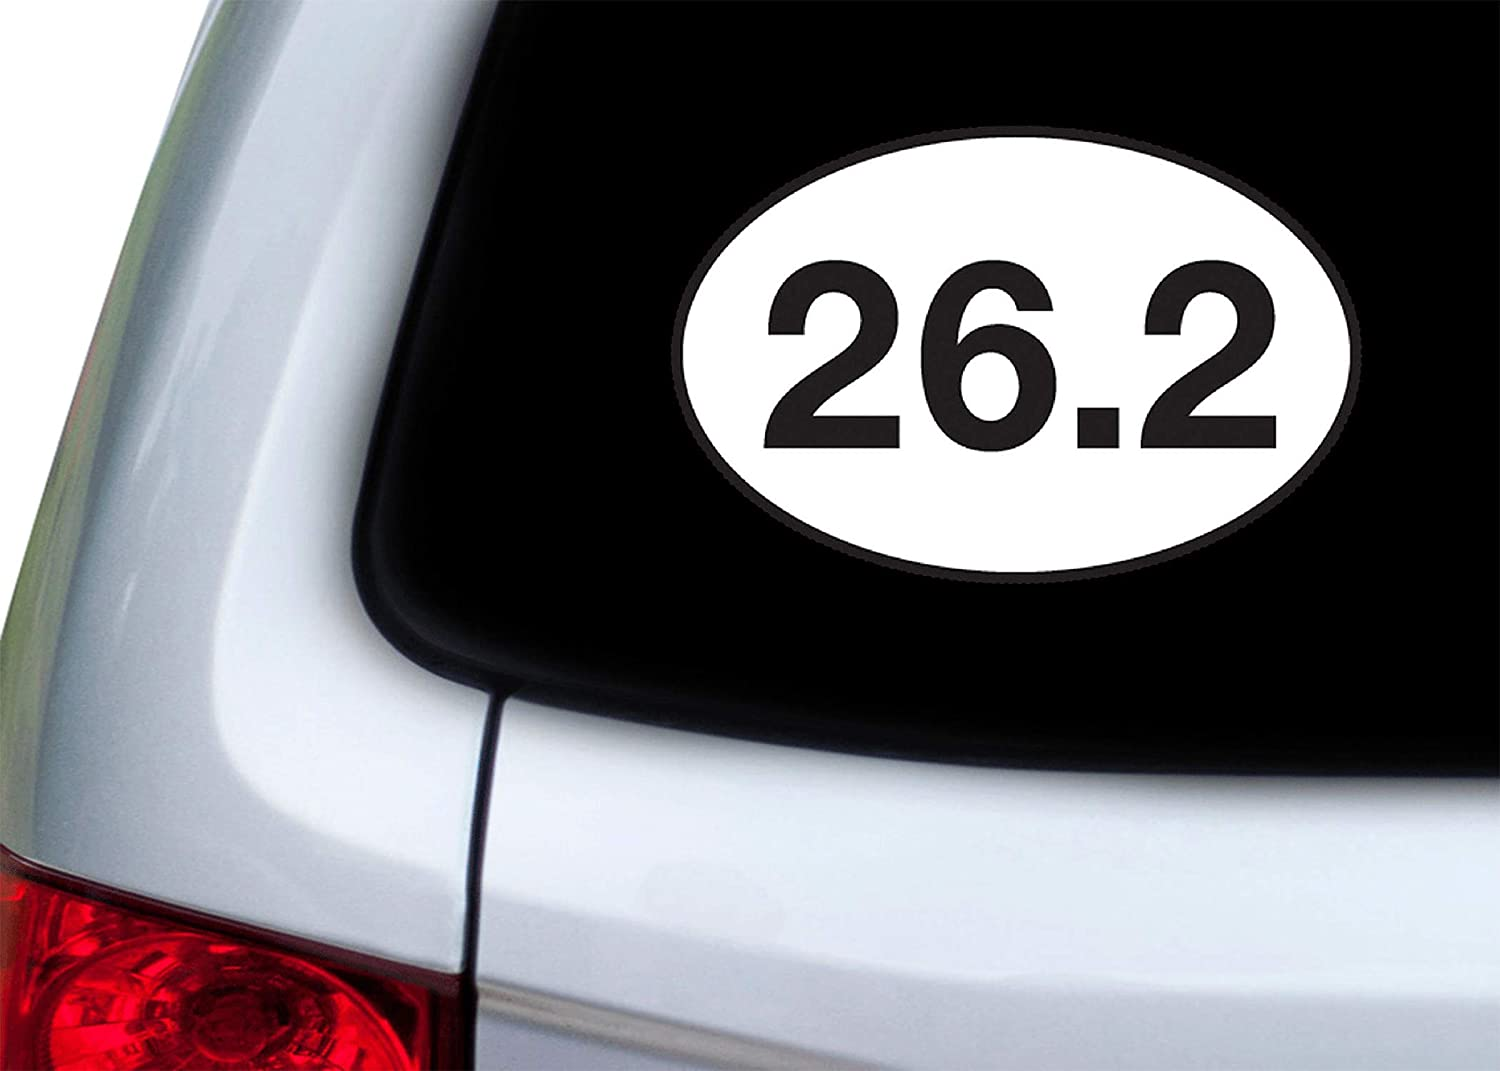 26.2 Marathon Running Sticker Bumper Sticker Oval 5 x 3 Decal Runner Track Run